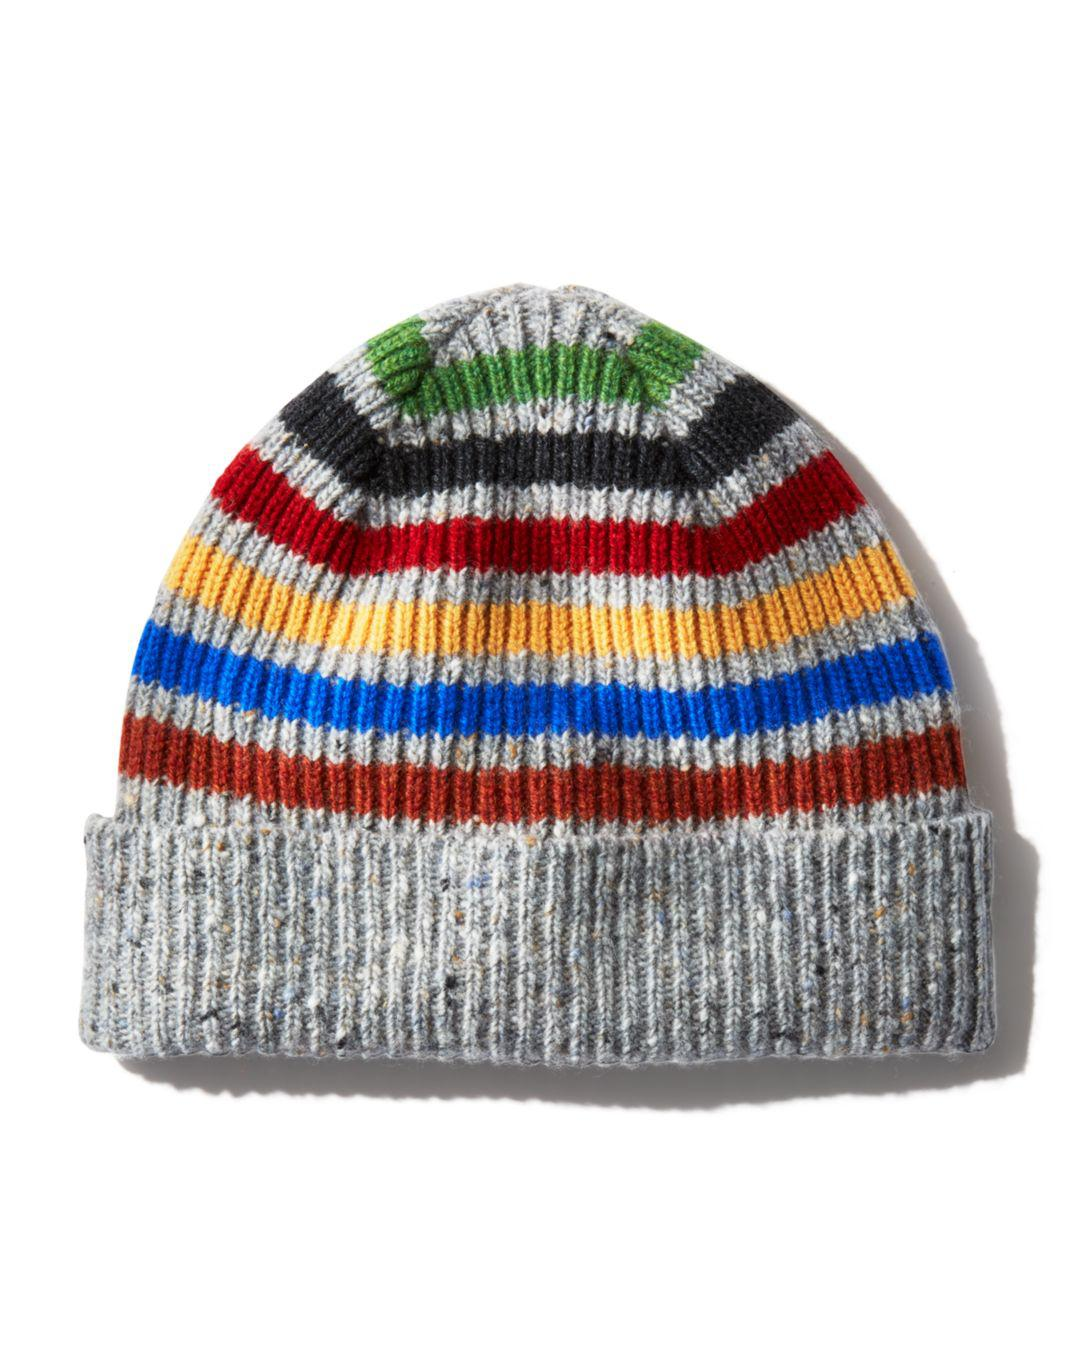 2b6a5ff7b7d Lyst - Paul Smith Donegal Striped Beanie in Gray for Men